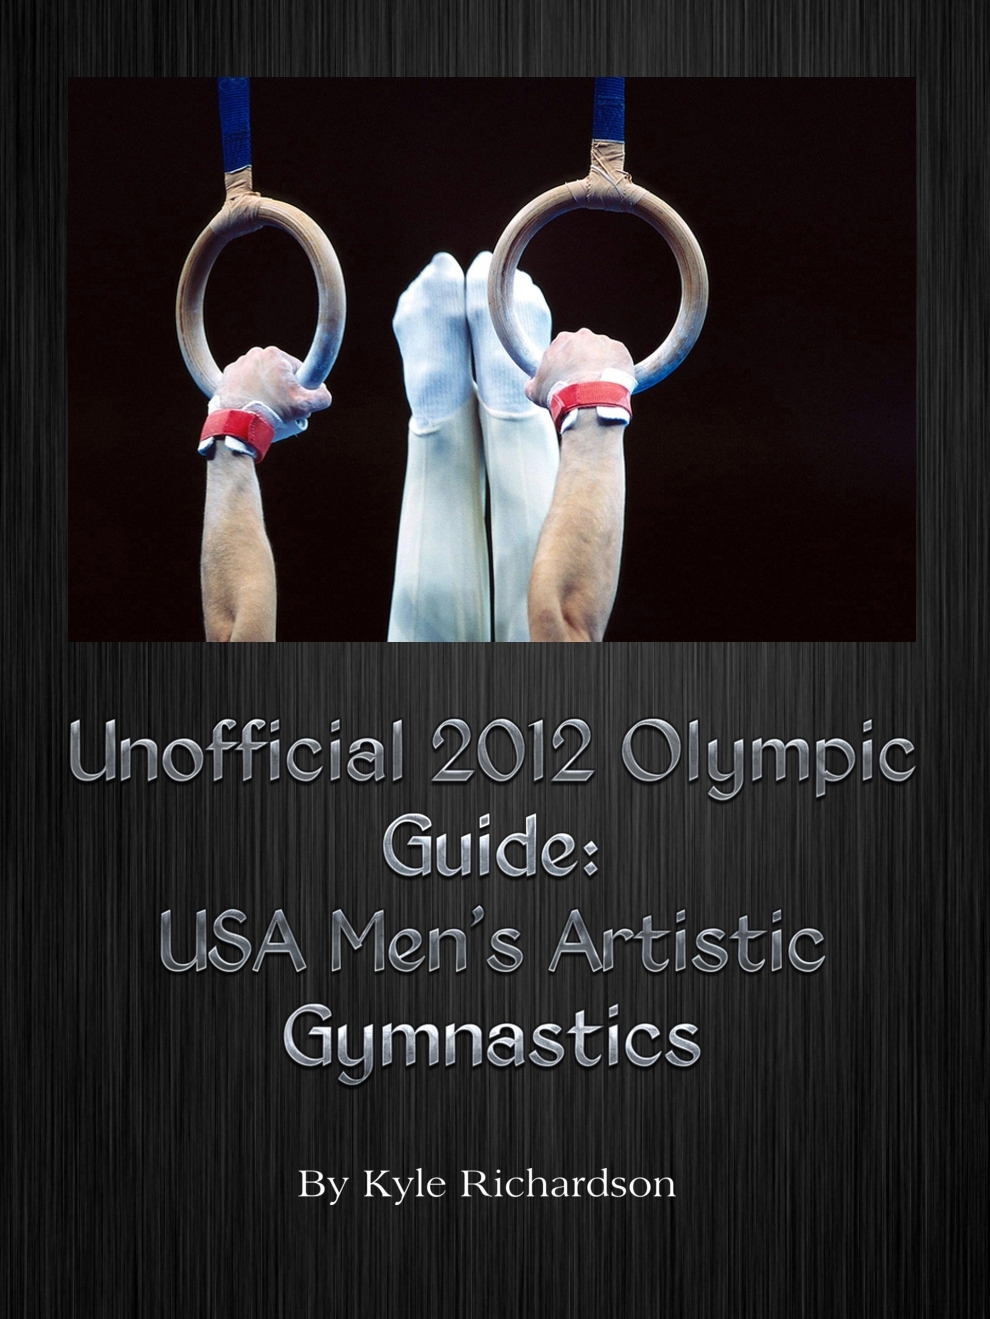 Unofficial 2012 Olympic Guides: USA Men's Artistic Gymnastics